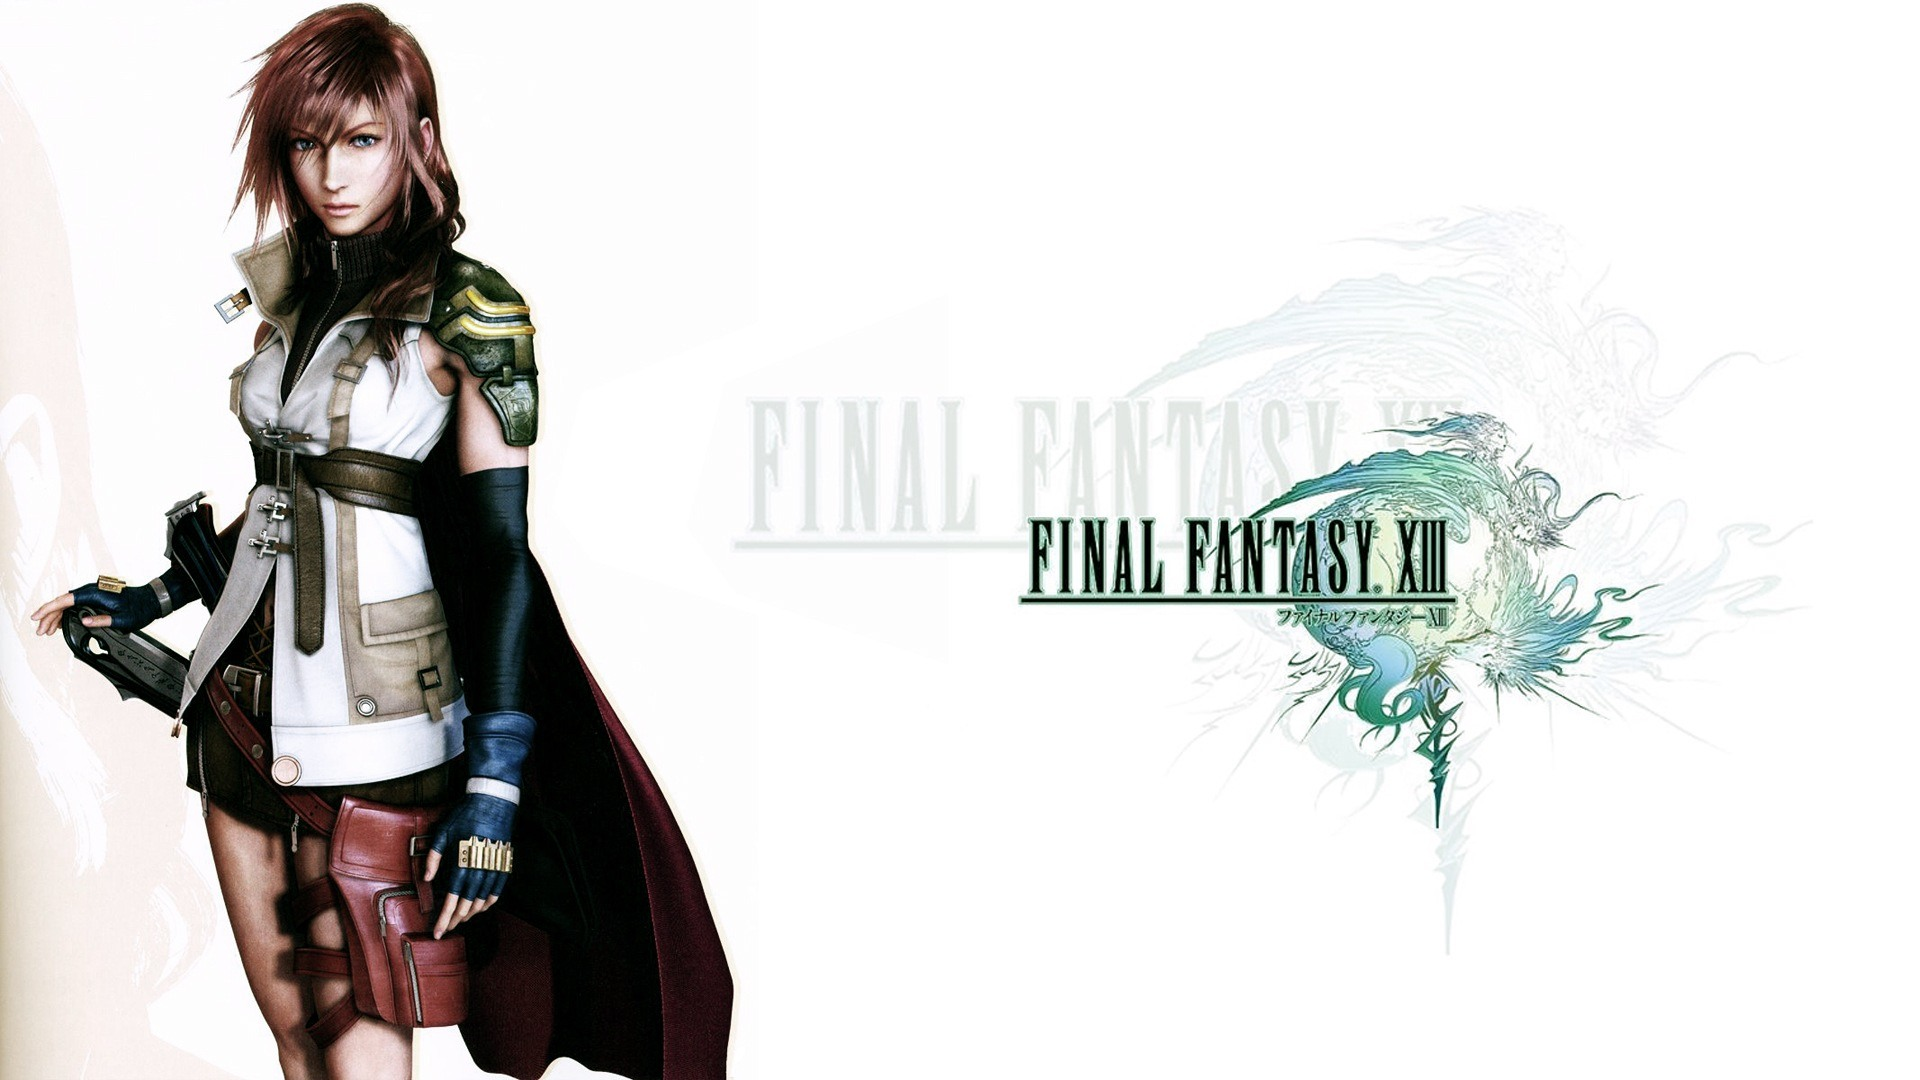 Lightning Final Fantasy Wallpaper Android 345 Wallpaper Wallpaper 1920x1080